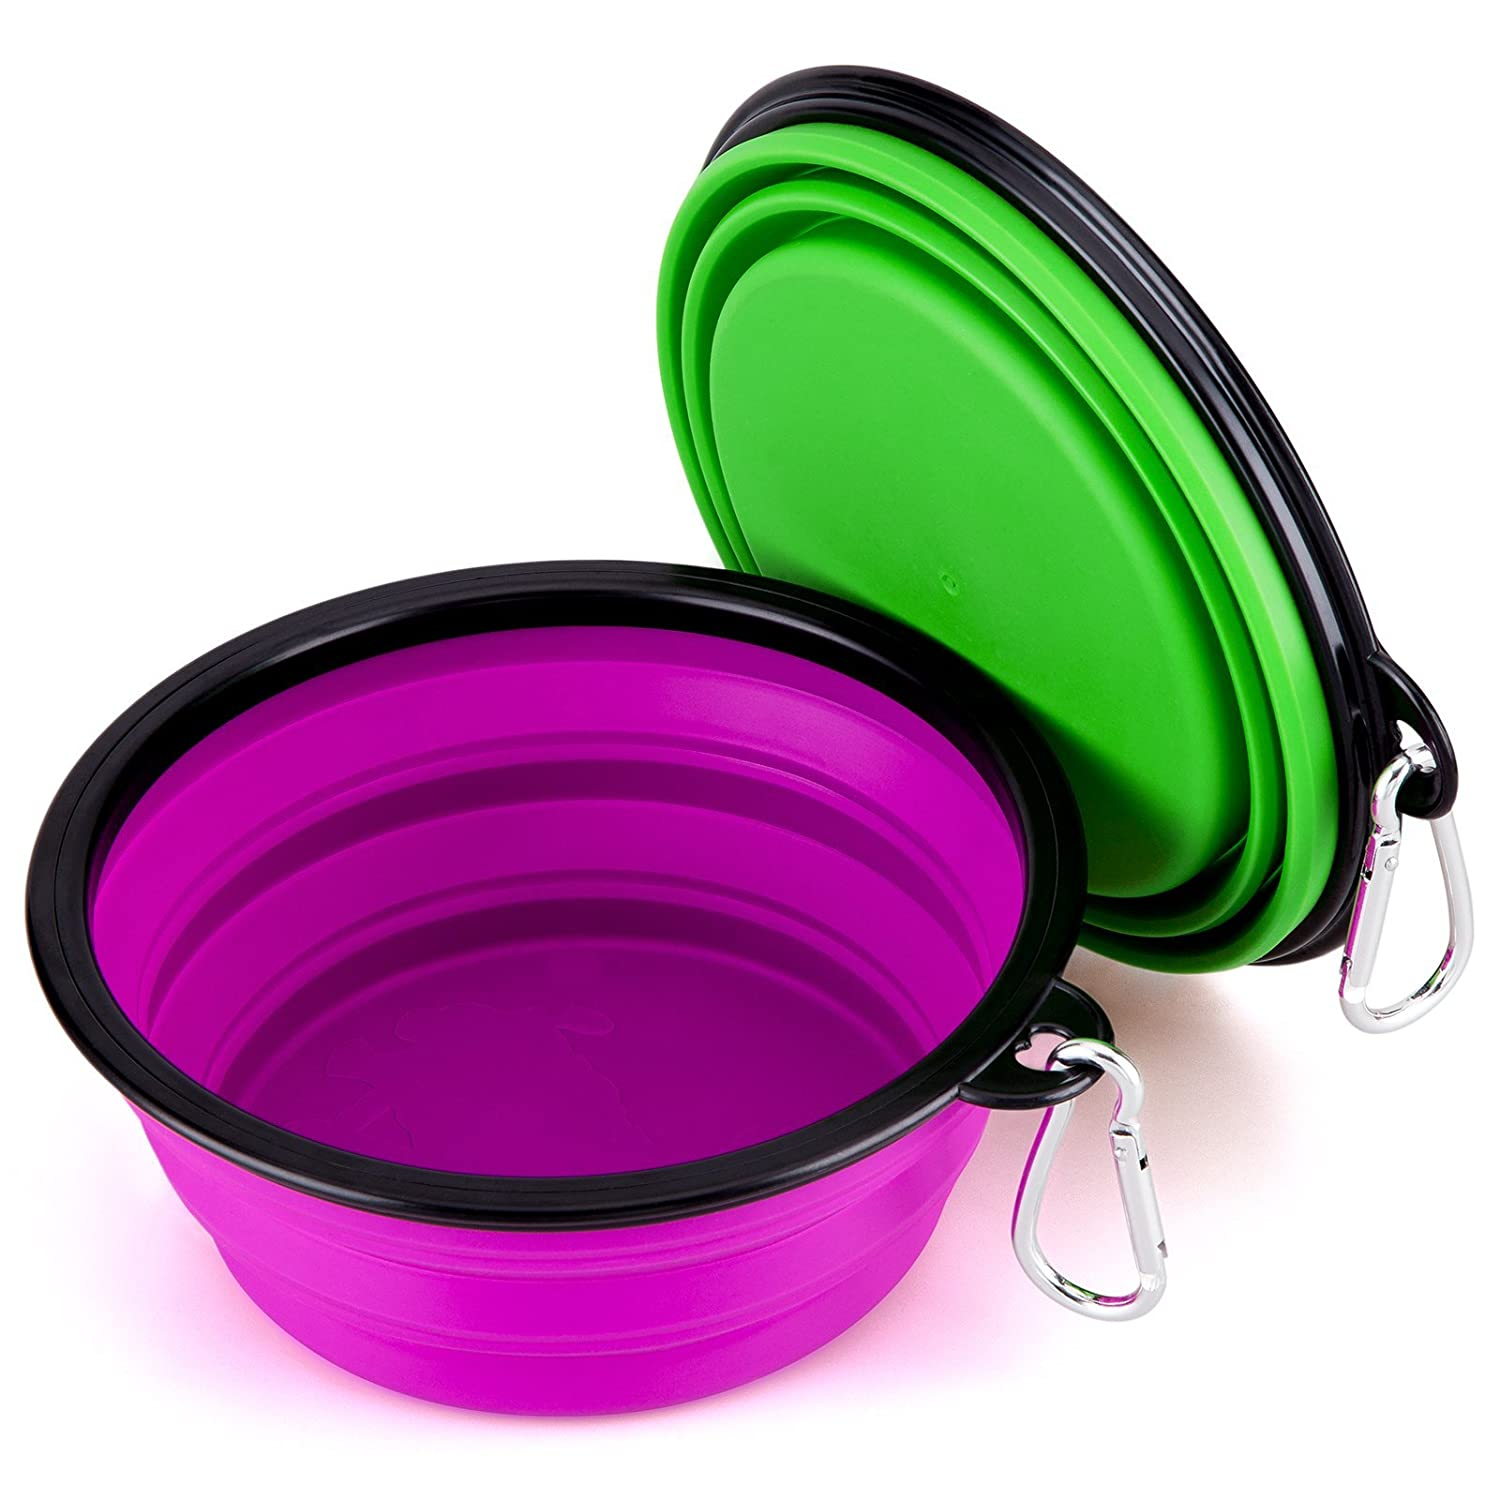 IDEGG Collapsible Dog Bowl Food Grade Silicone BPA Free Foldable Expandable Cup Dish for Pet Dog Cat Food Water Feeding Portable Travel Camping Bowl